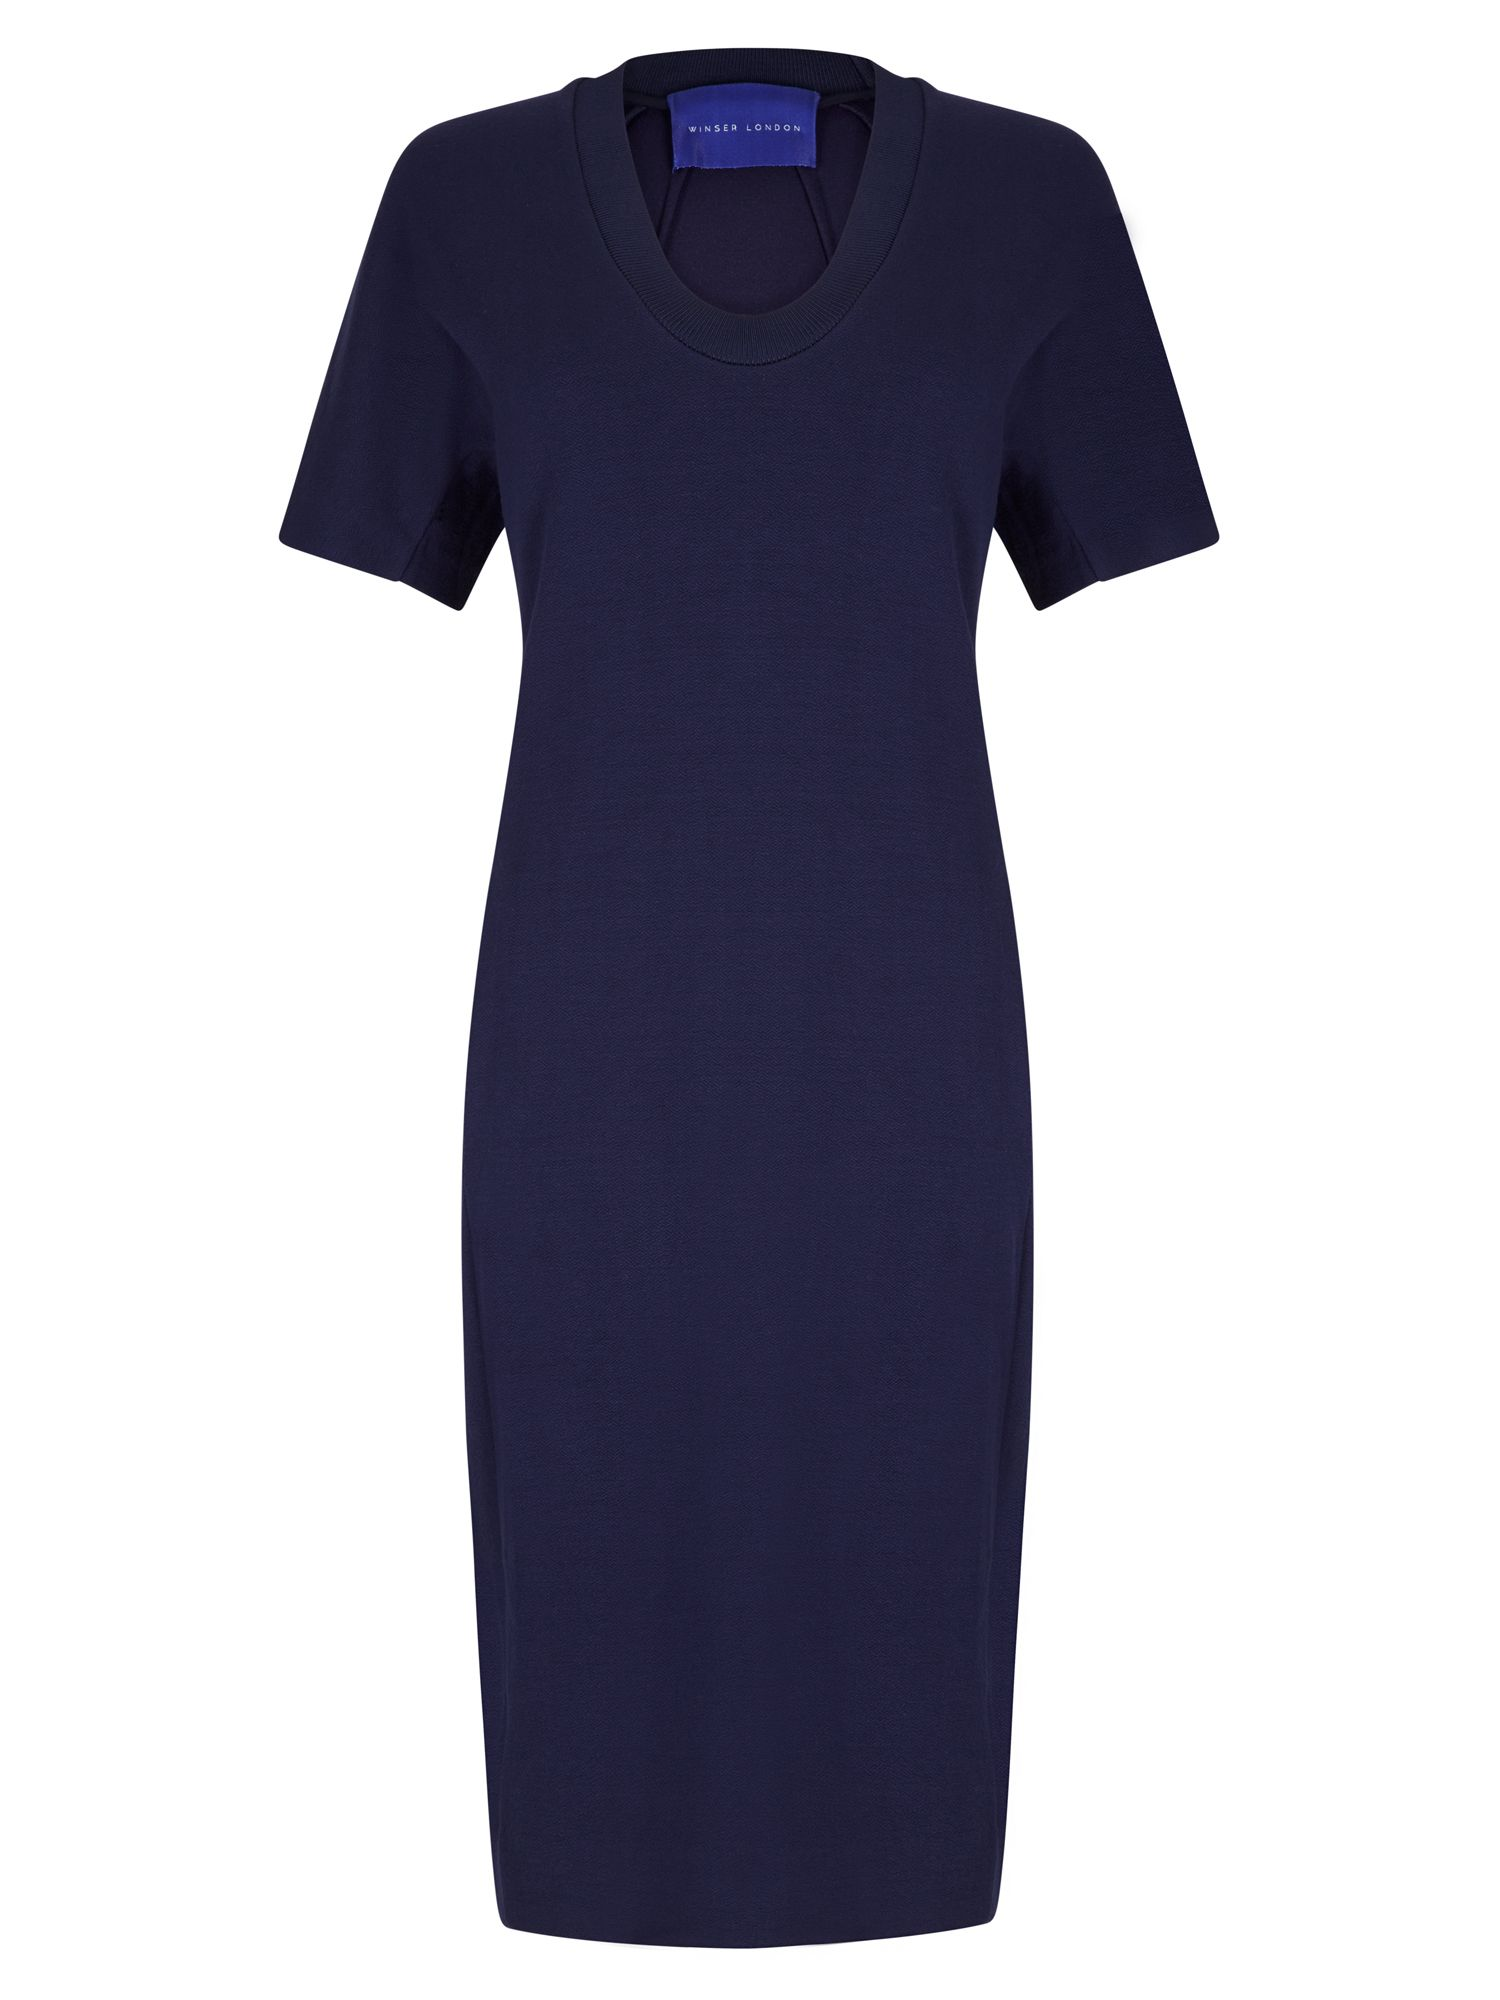 Winser London Crepe Jersey Scoop Neck Dress, Blue